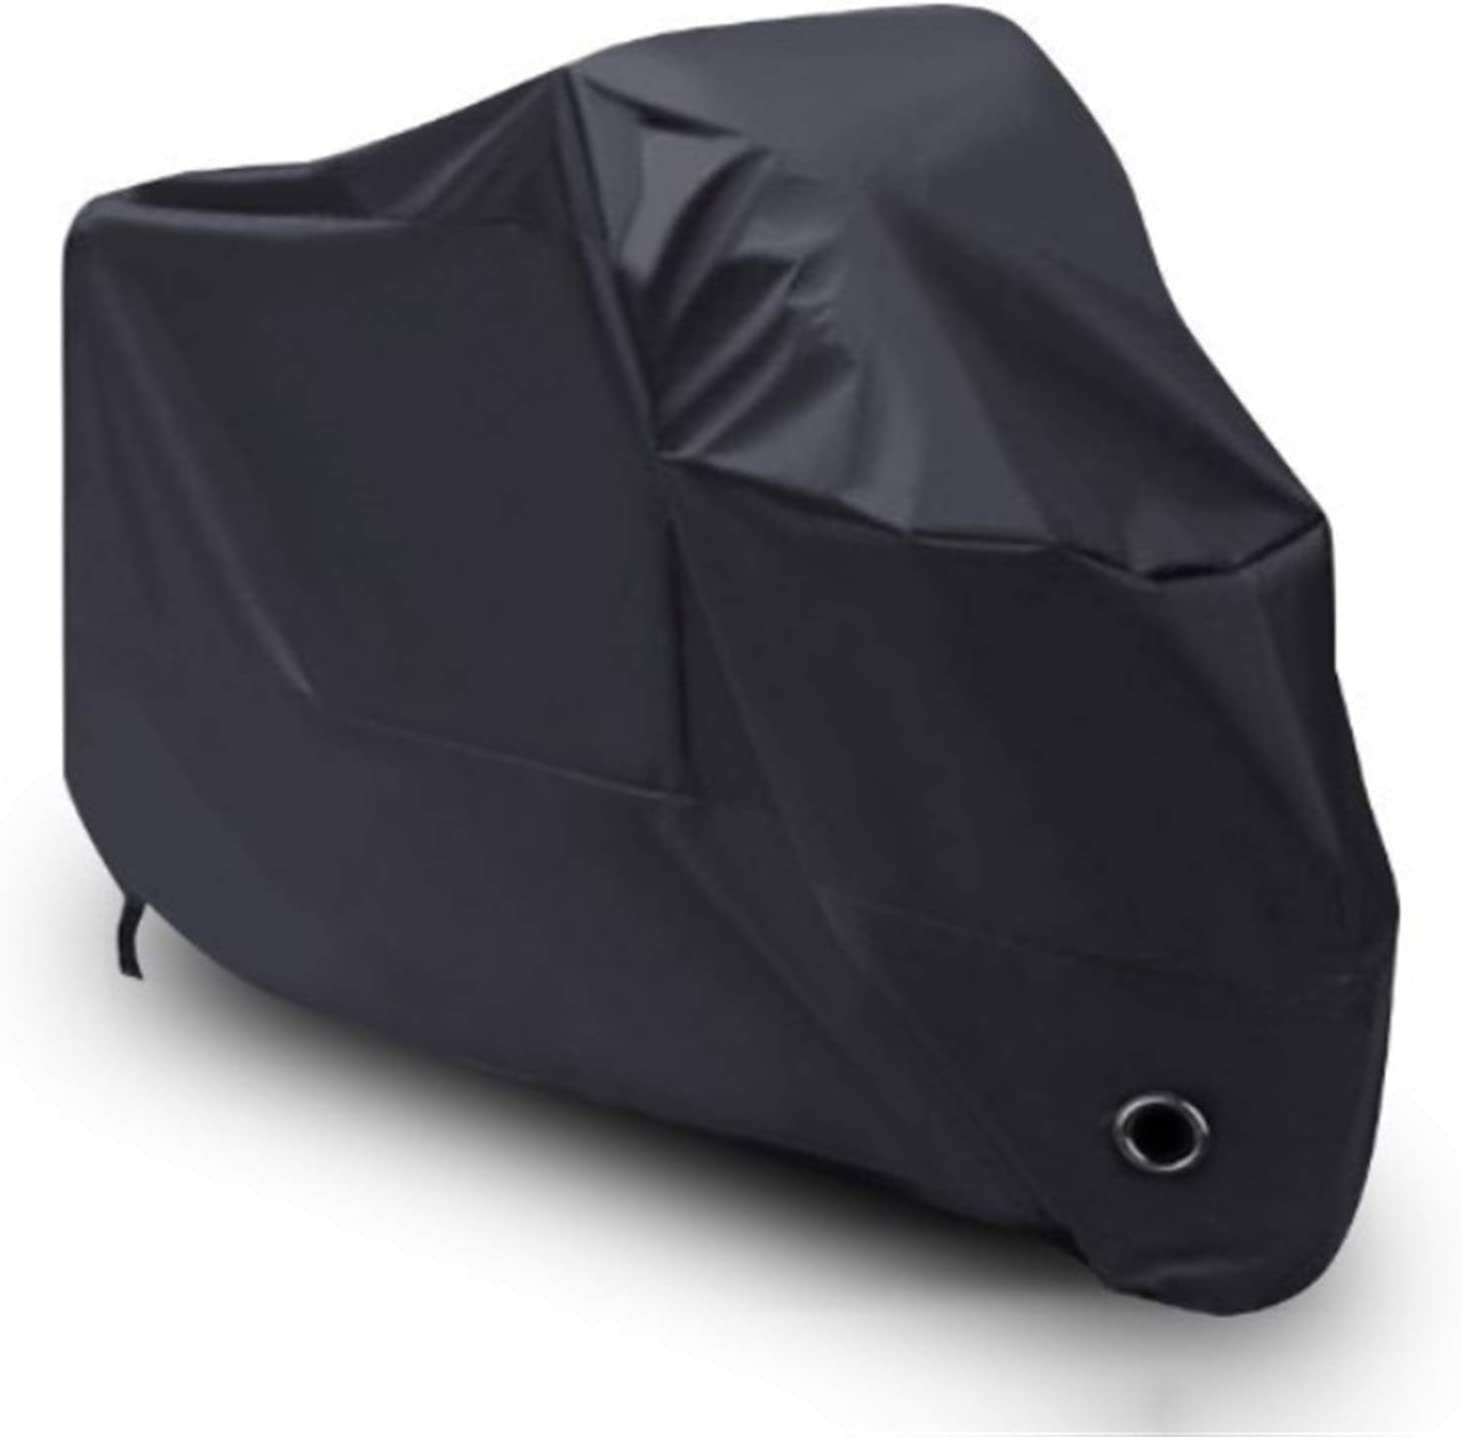 HOTLIGHT Full Motorcycle Indefinitely Cover M Compatible Motorbike Inexpensive with